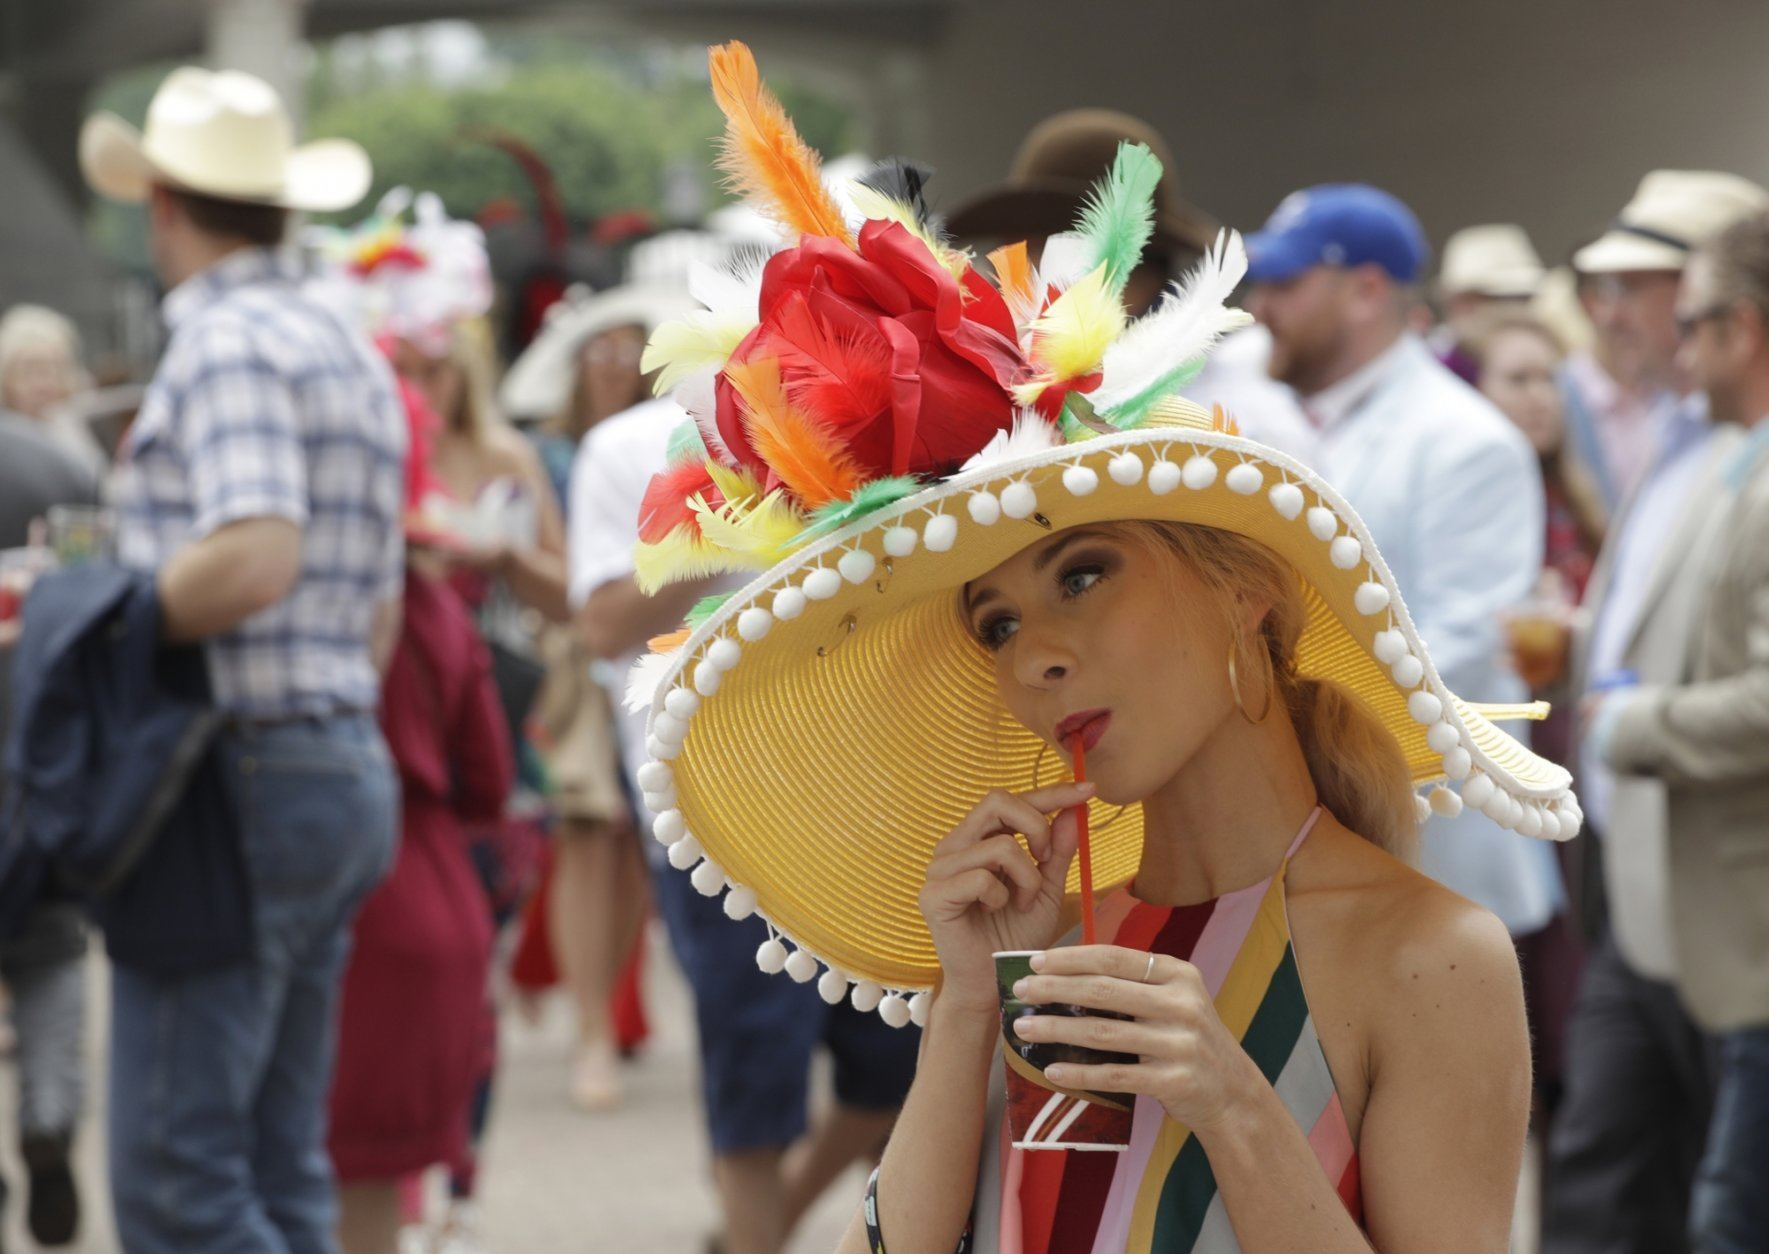 In this photo taken with long time exposure, a woman wears a hat at Churchill Downs before the 145th running of the Kentucky Derby horse race Saturday, May 4, 2019, in Louisville, Ky. (AP Photo/Charlie Riedel)